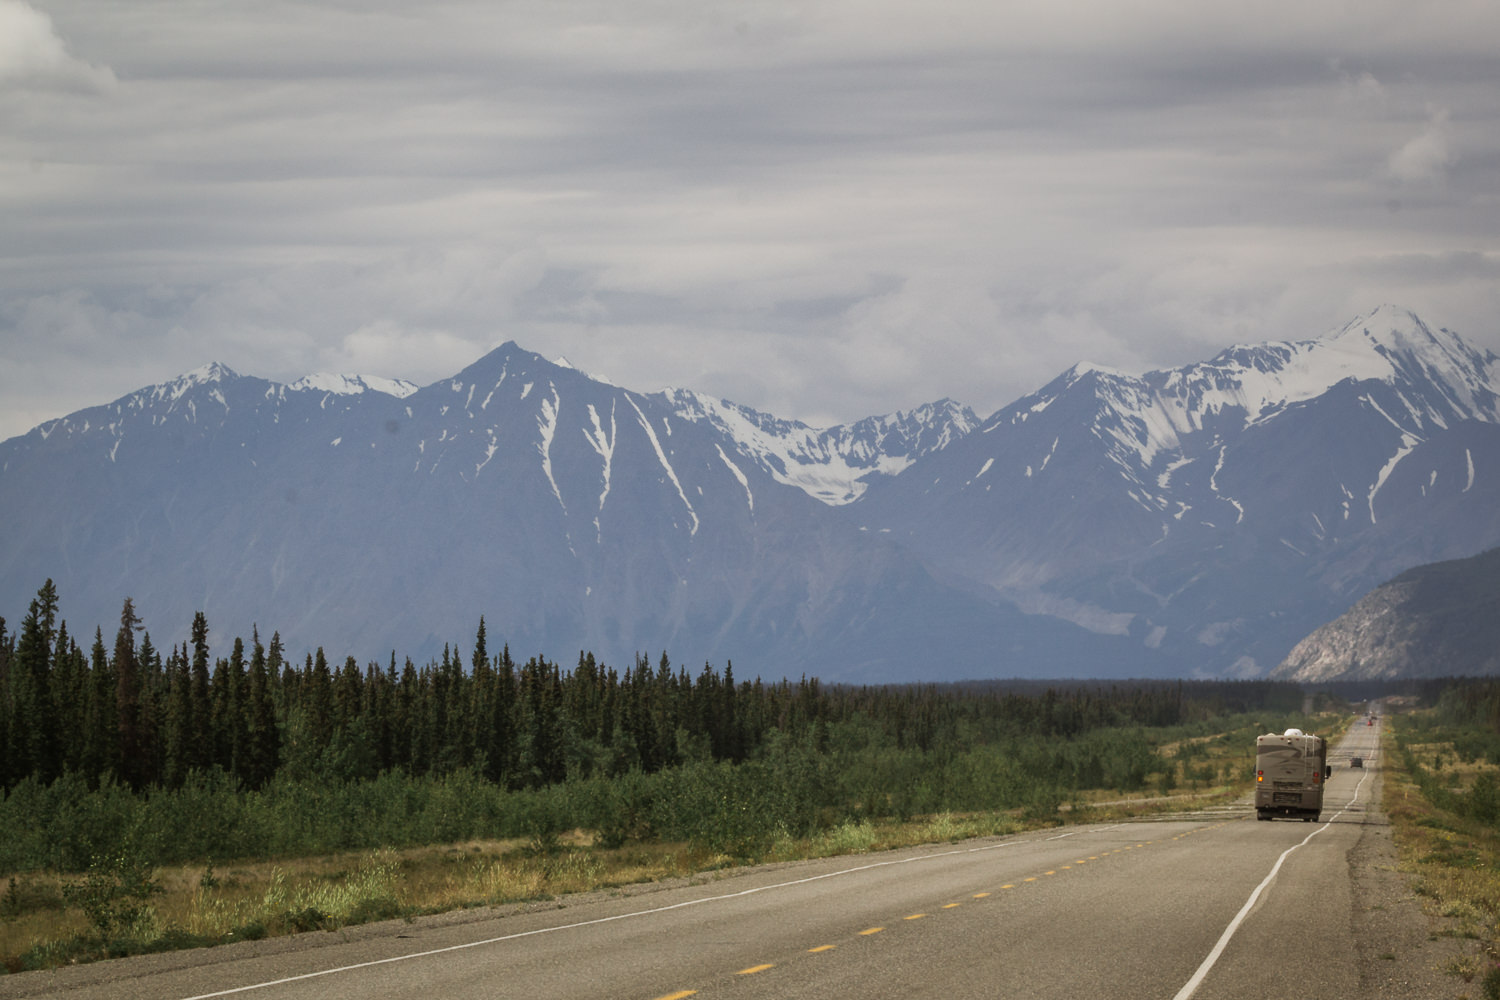 The mighty Alcan.  Although proposals began back in the 1920s, the Alaska-Canadian Highway wasn't built until 1942. It took the attack on Pearl Harbor and the US being drawn into WWII to spur its construction. Worried the Japanese would follow the invasion of Hawaii with Alaska's Aleutian Islands, a bold plan was drawn up to build a 1,400-mile supply road through the harshest landscape in North America in just 8 months. Canada agreed to it under the condition the US bear the full cost, and release it to Canadian authority once the war ended.One army colonel characterized it as a feat of engineering second only to the Panama Canal.  After having seen the rugged country this road cuts through, and reading about the conditions these men were met with (temperatures of minus fifty being one) as they completed this mammoth project,I remain in complete awe.